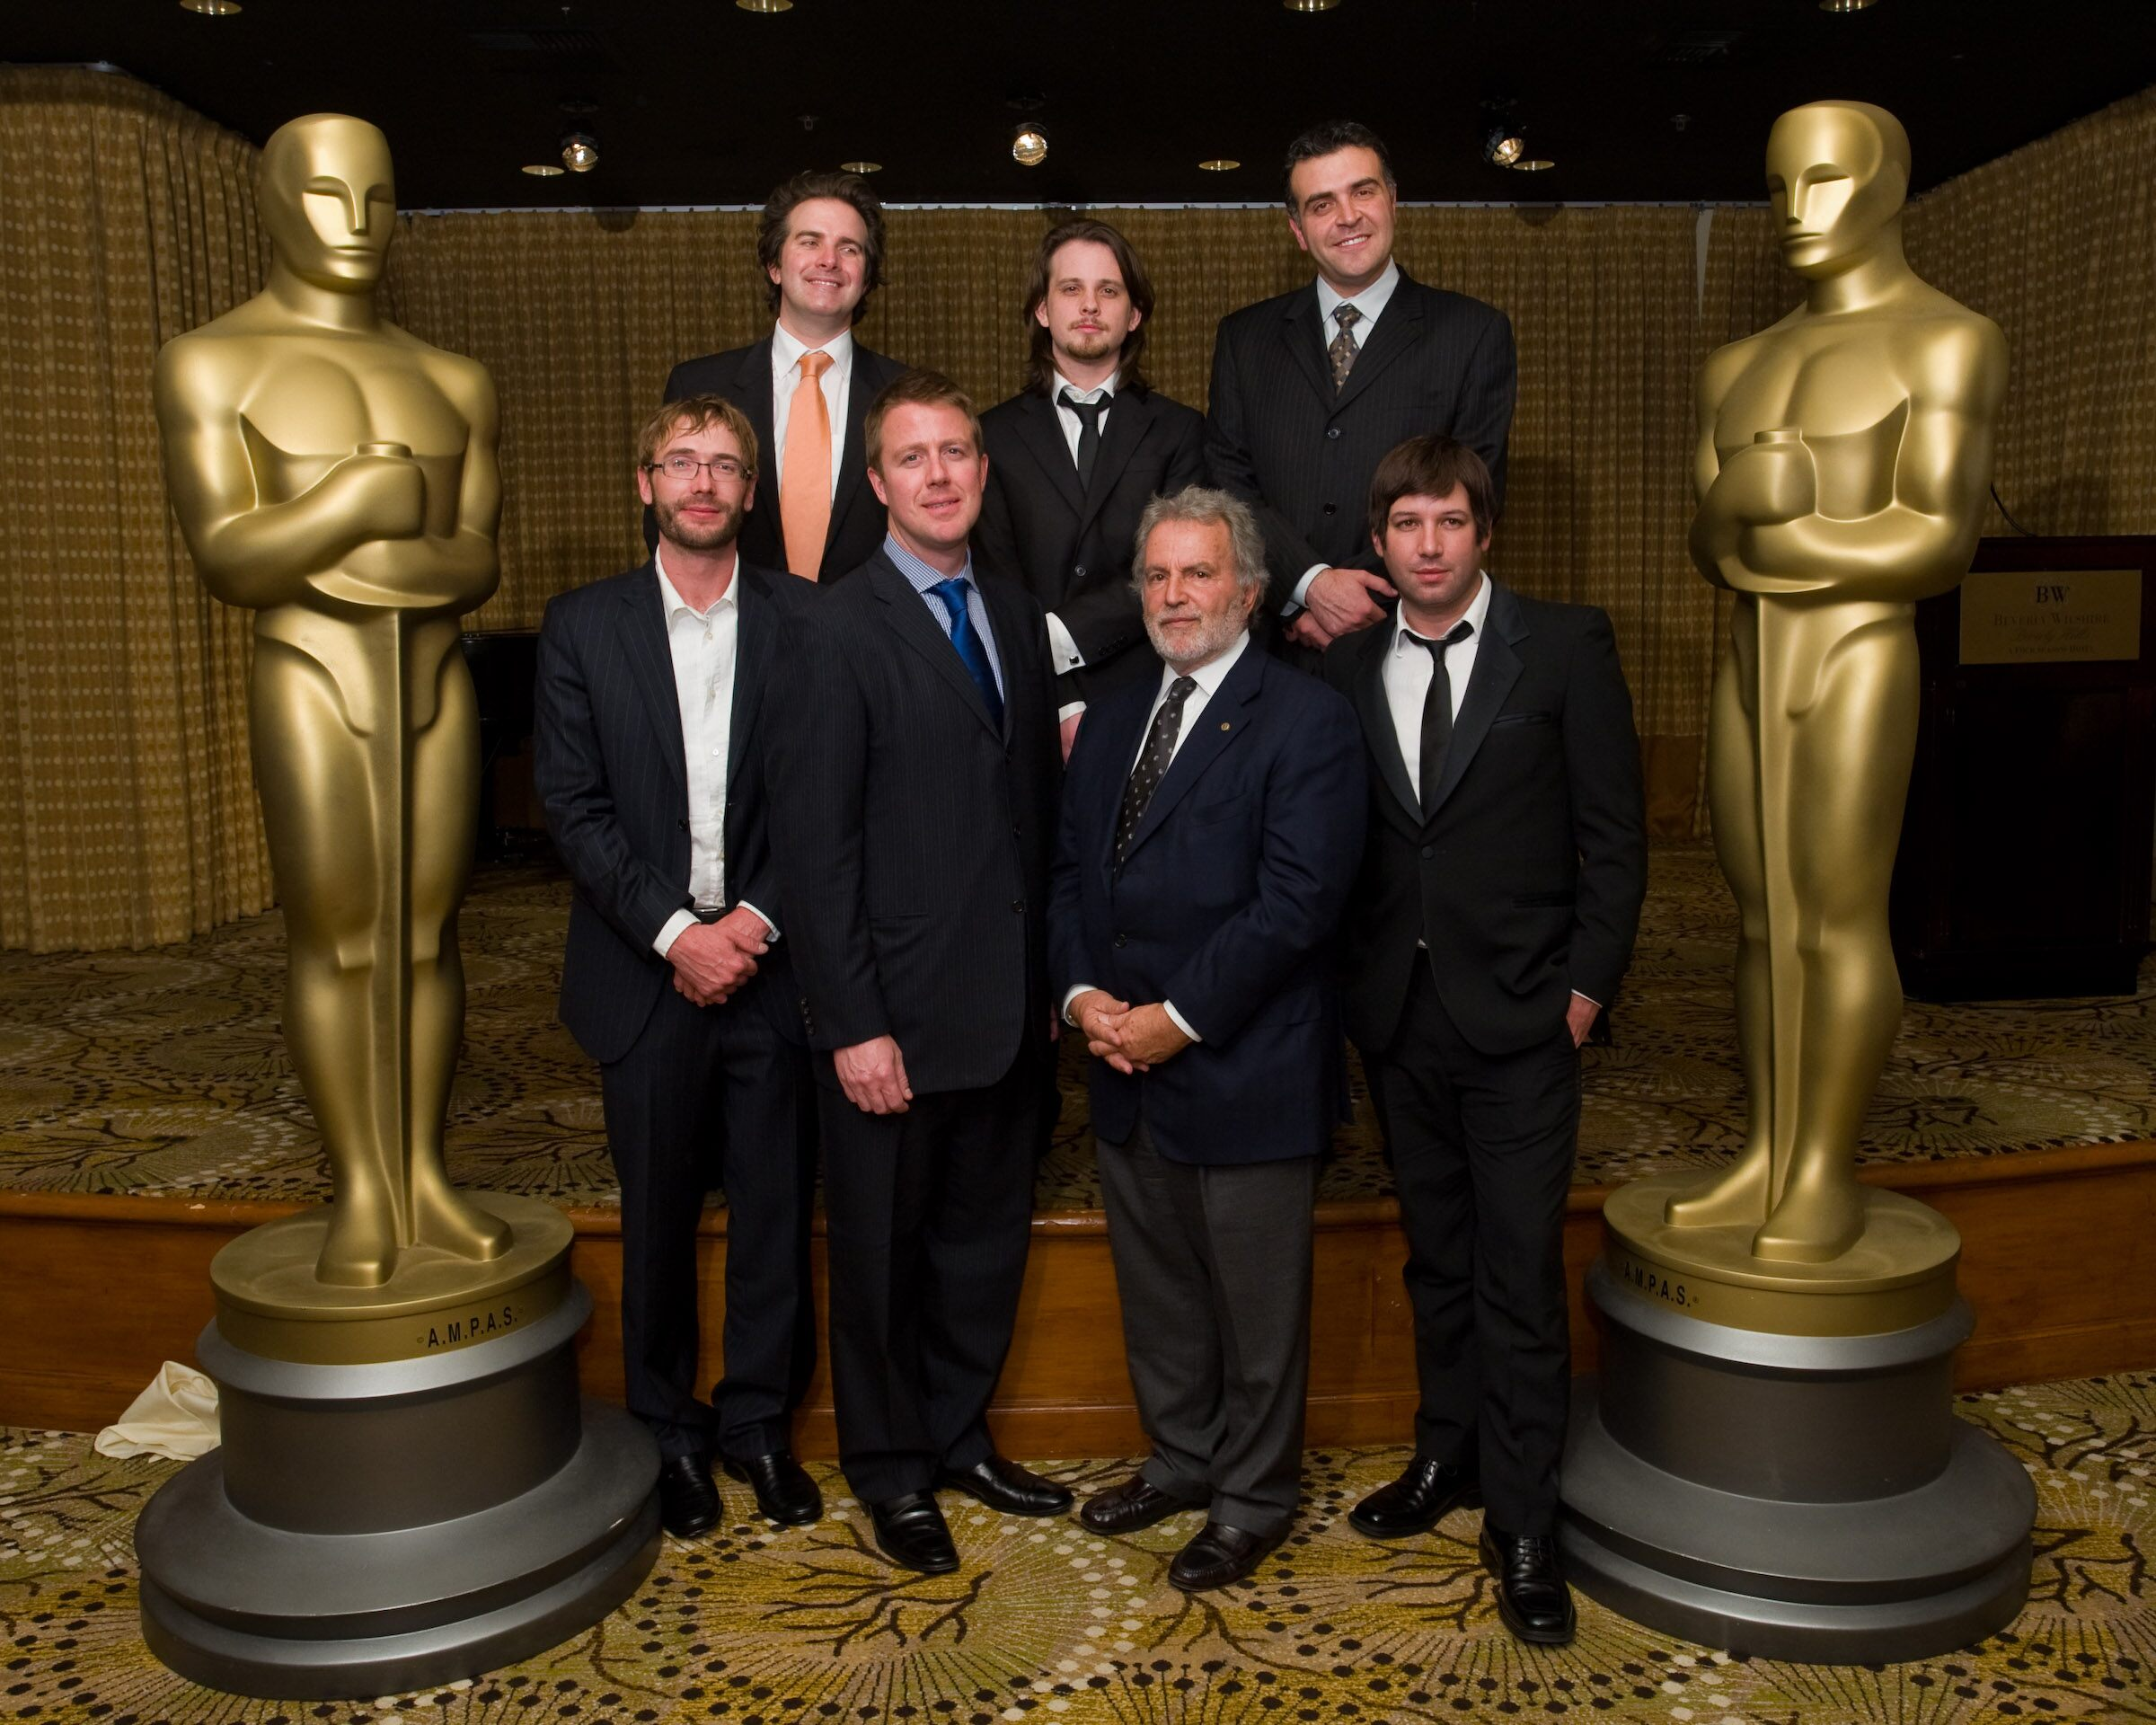 The 2008 winners with President of the Academy Sid Ganis